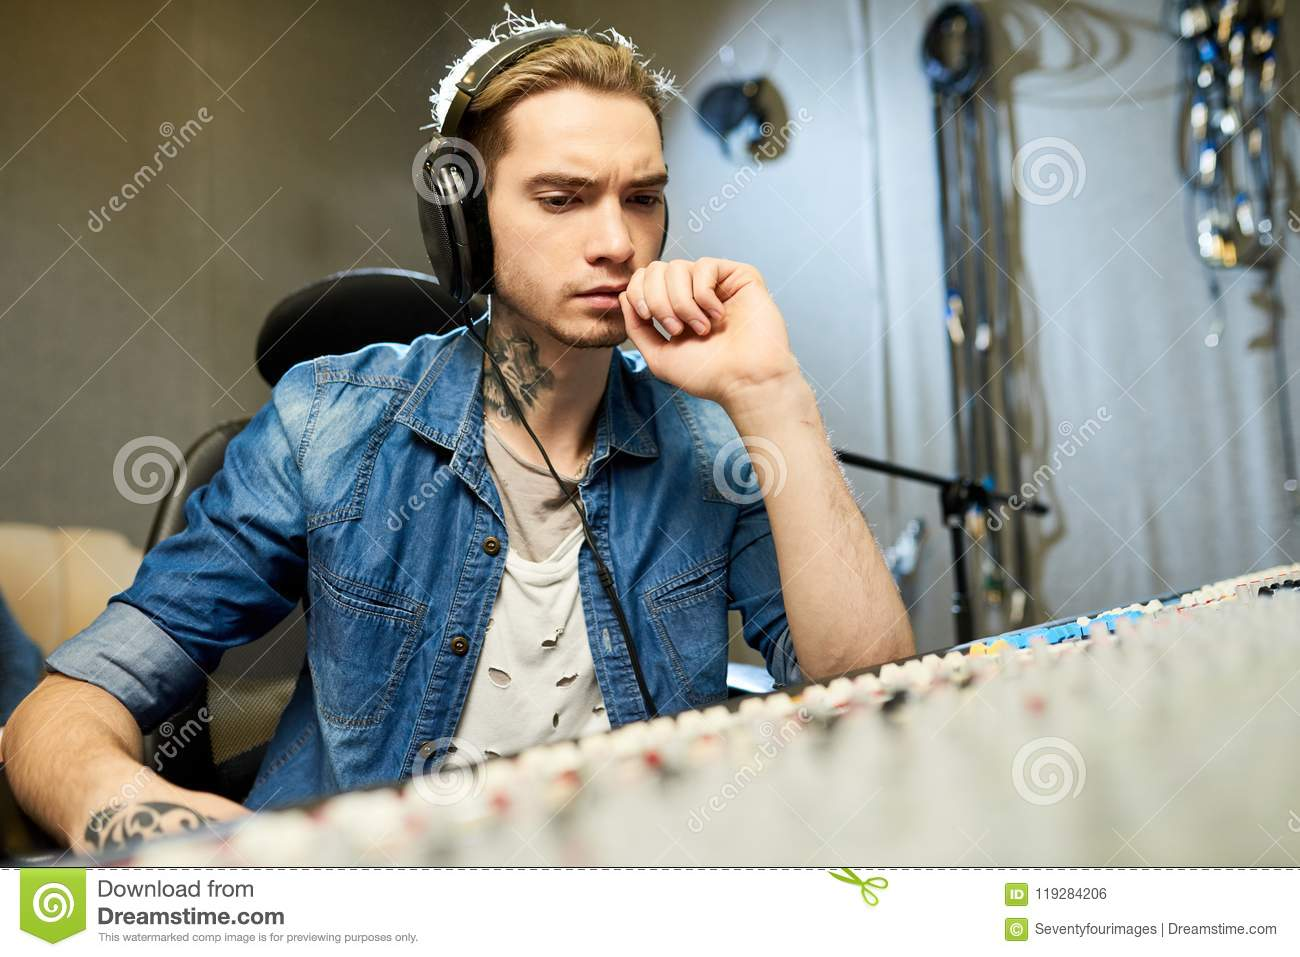 Musician listening to song recording